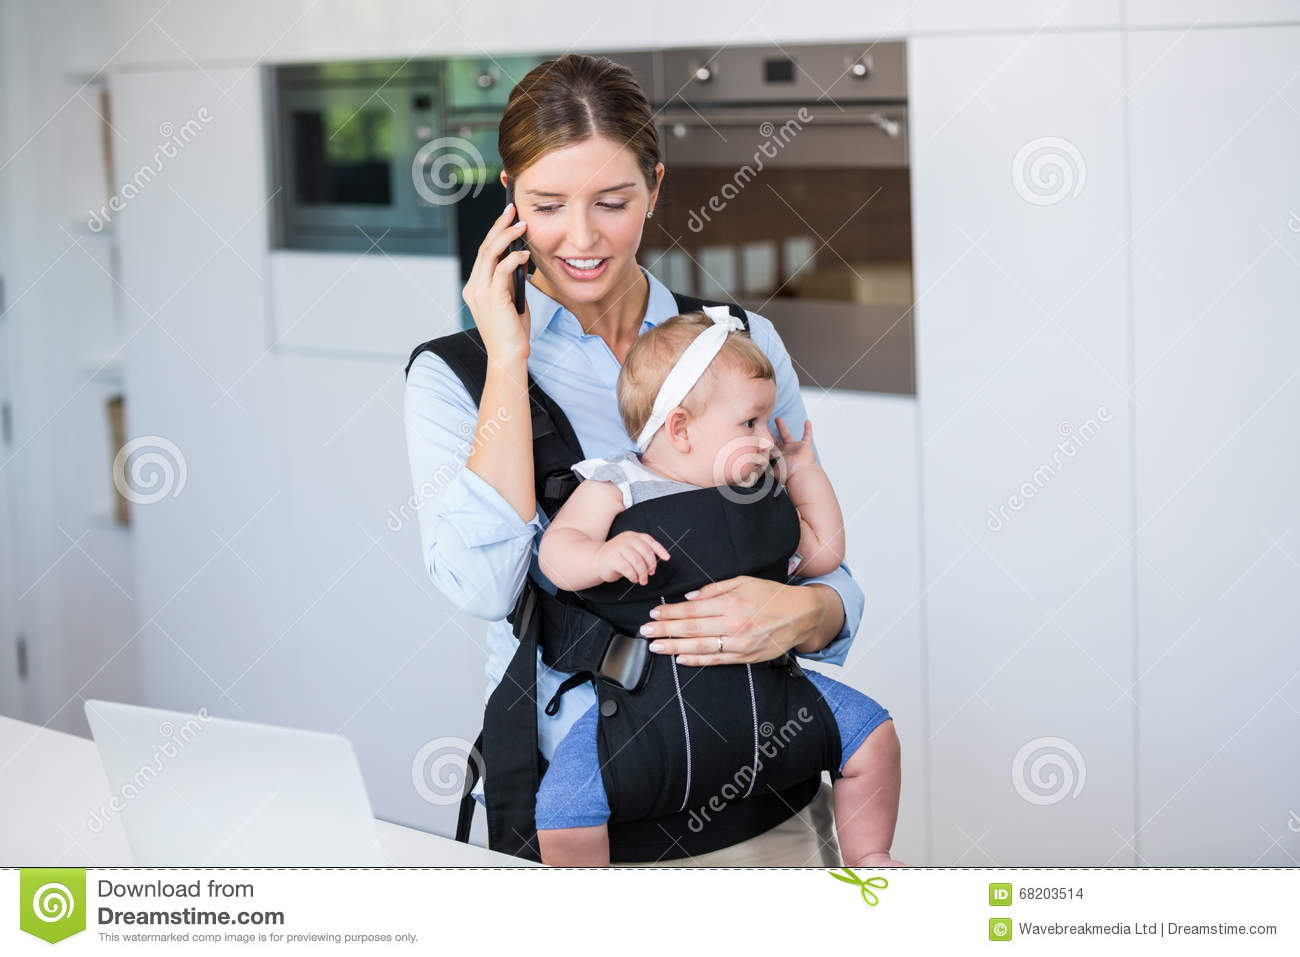 Woman talking on mobile phone while carrying baby girl